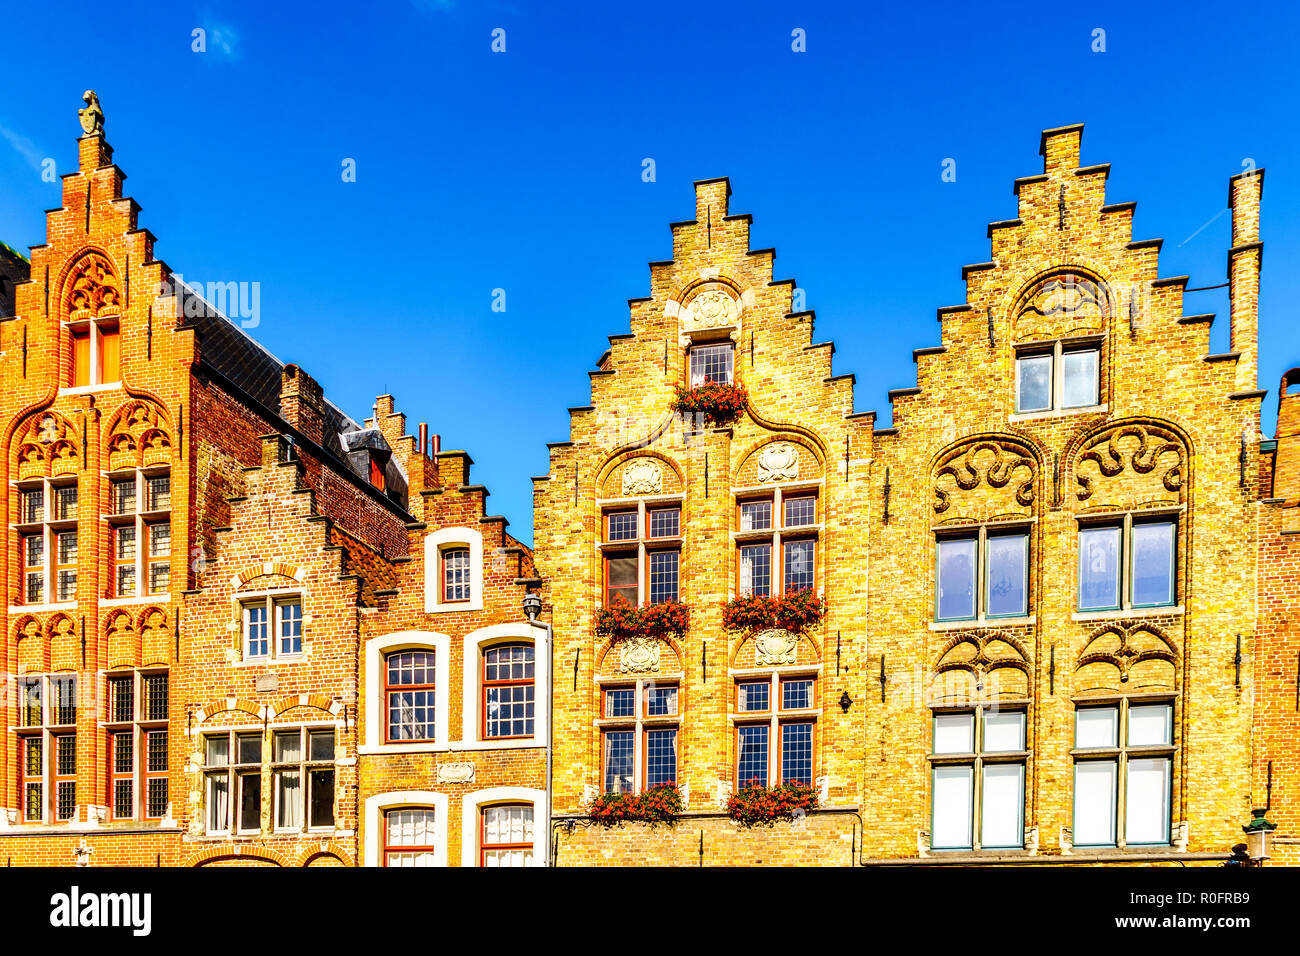 Medieval houses with step gables in the historic and famous city of Bruges, Belgium - Stock Image